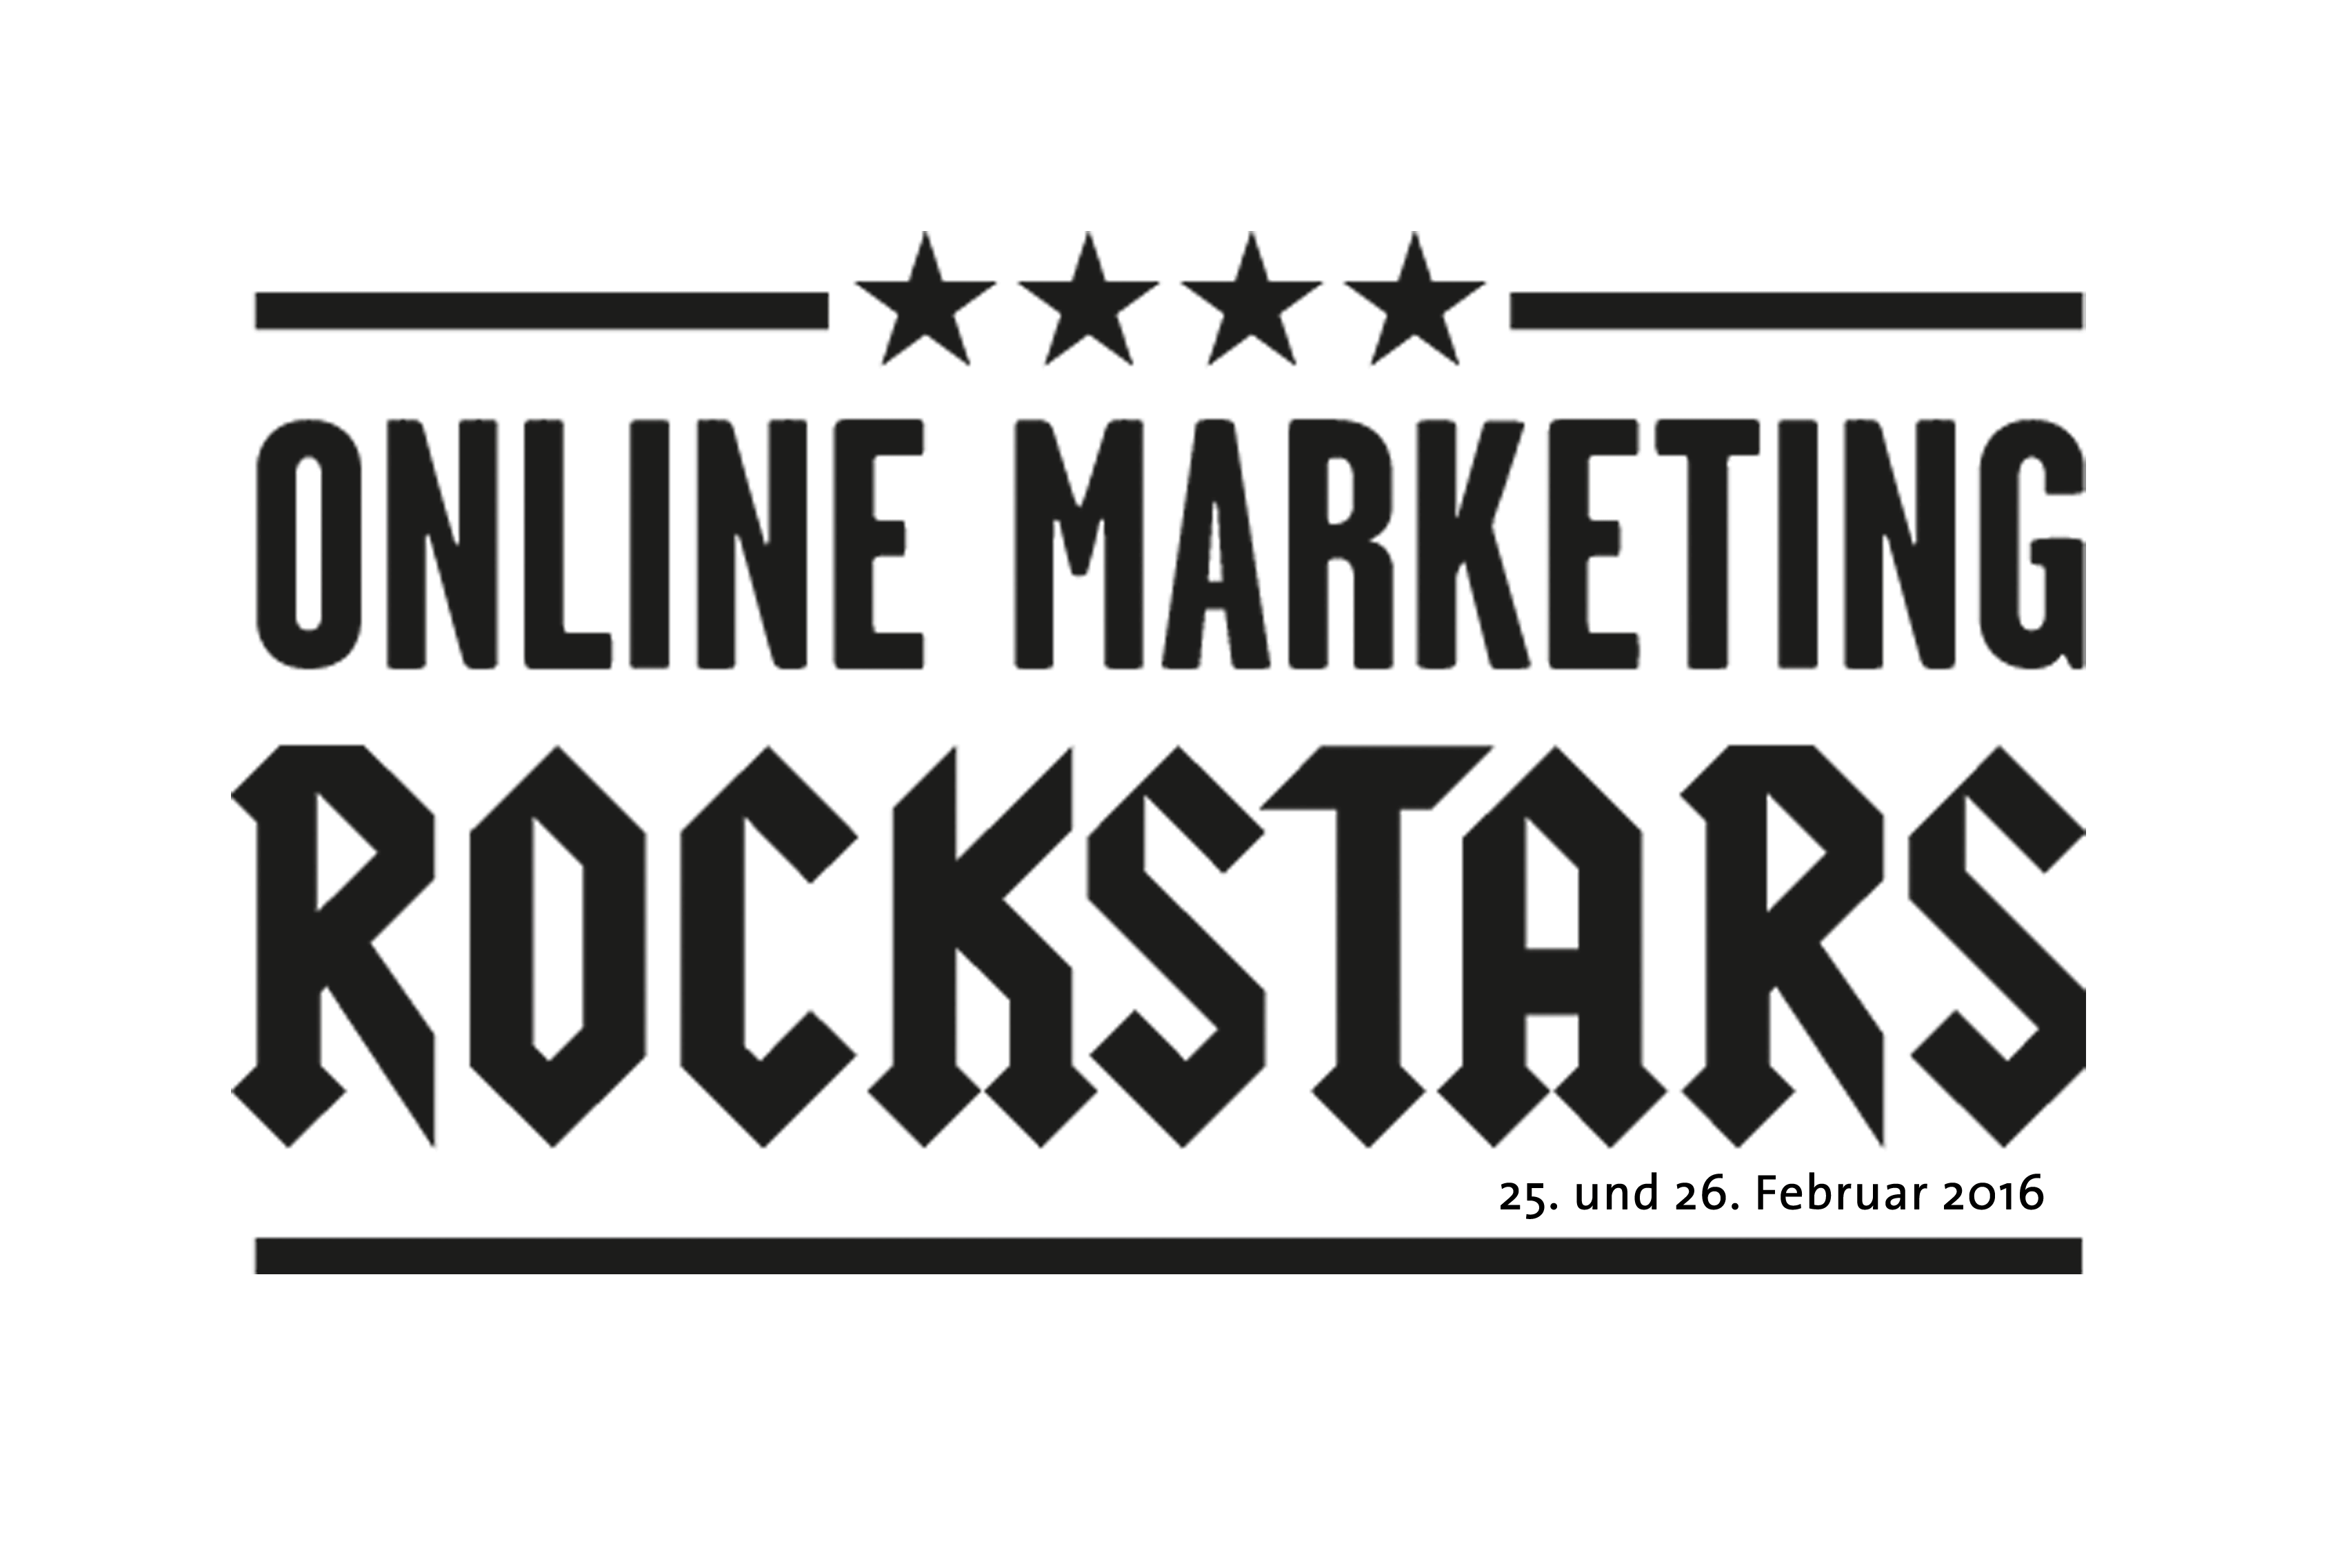 Online Marketing Rockstars 2016 – Ende Februar in Hamburg